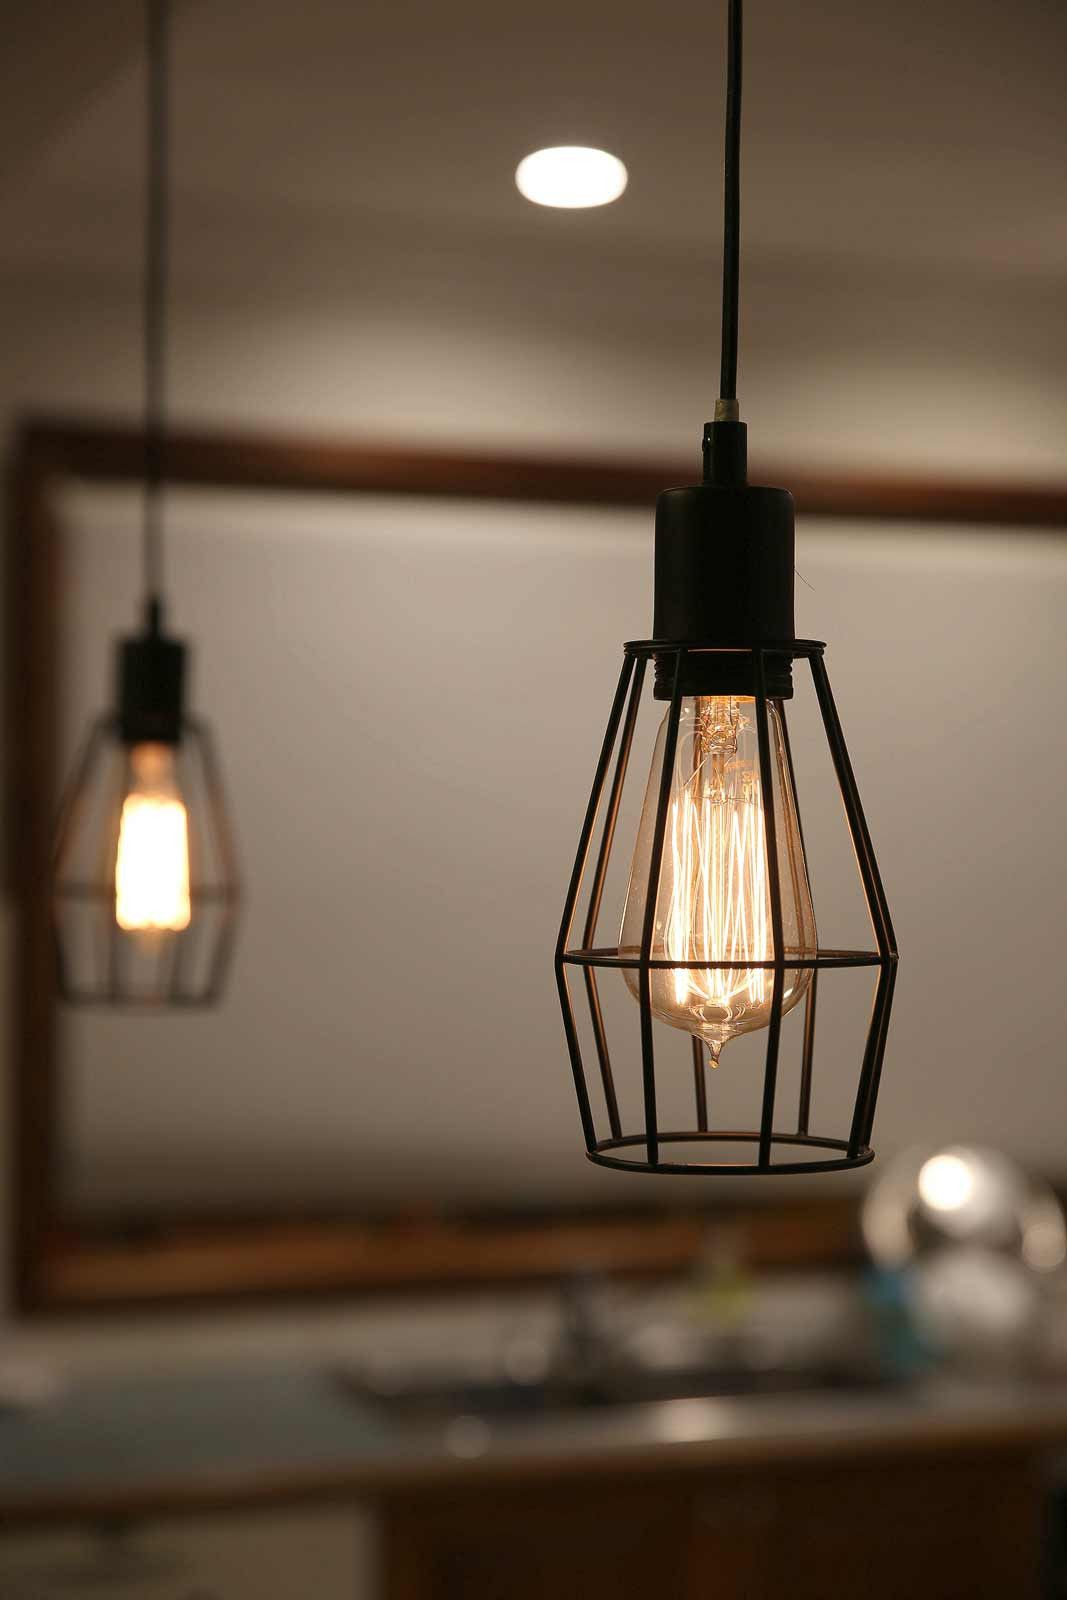 Industrial Kitchen Lights Wooden Chairs Black Cage Pendant Light For Dining